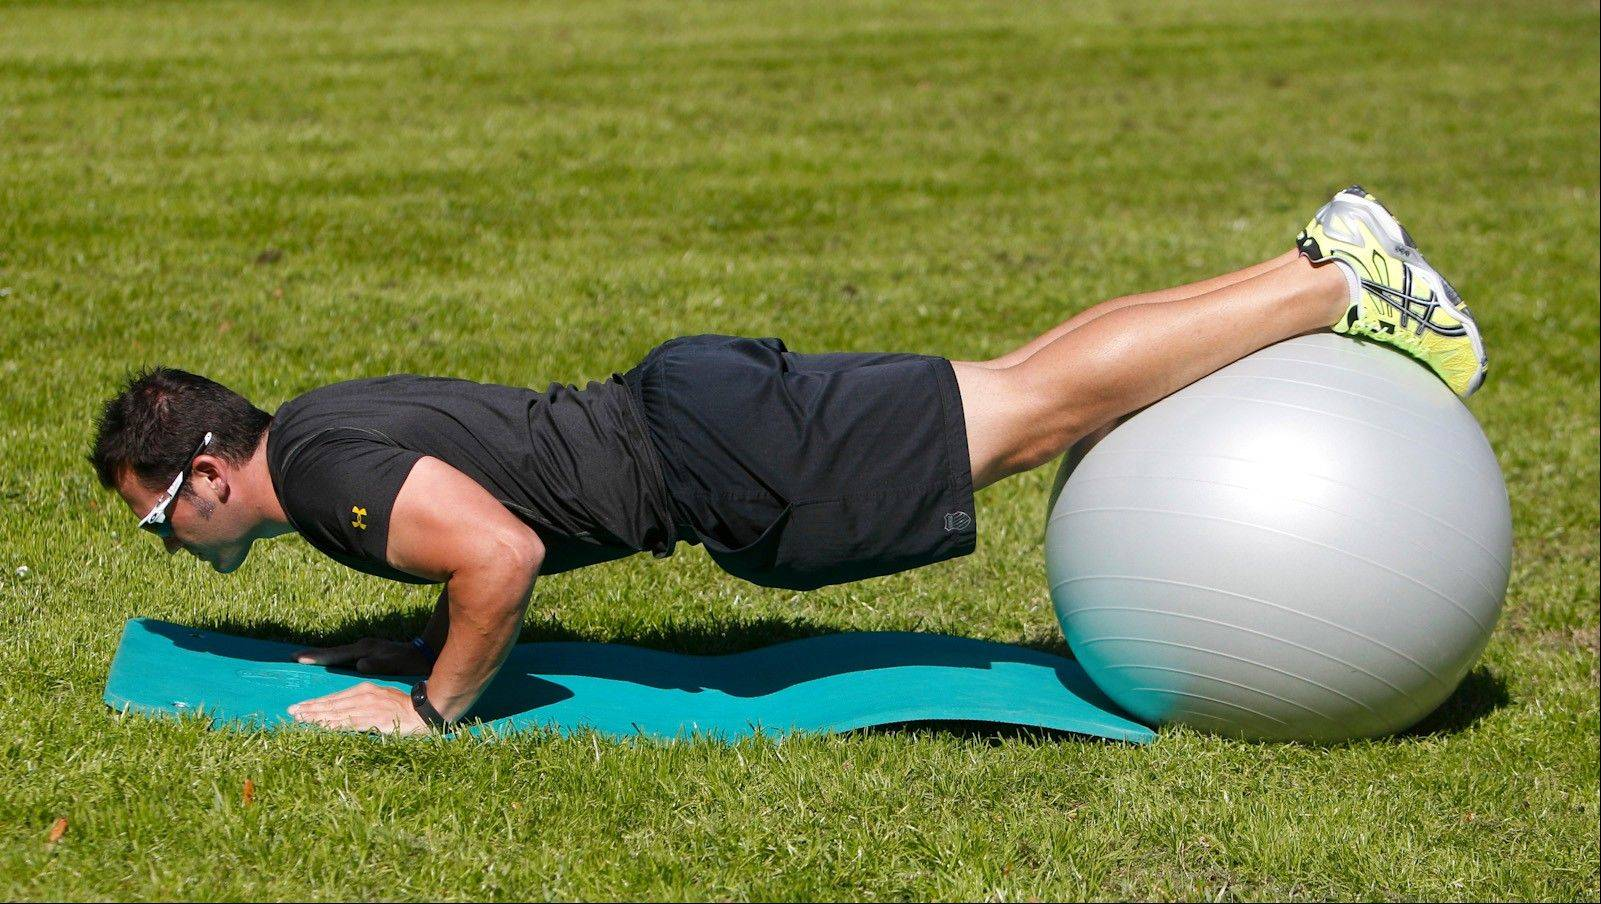 A pushup on ball is a great upper-body and core-strengthening exercise.